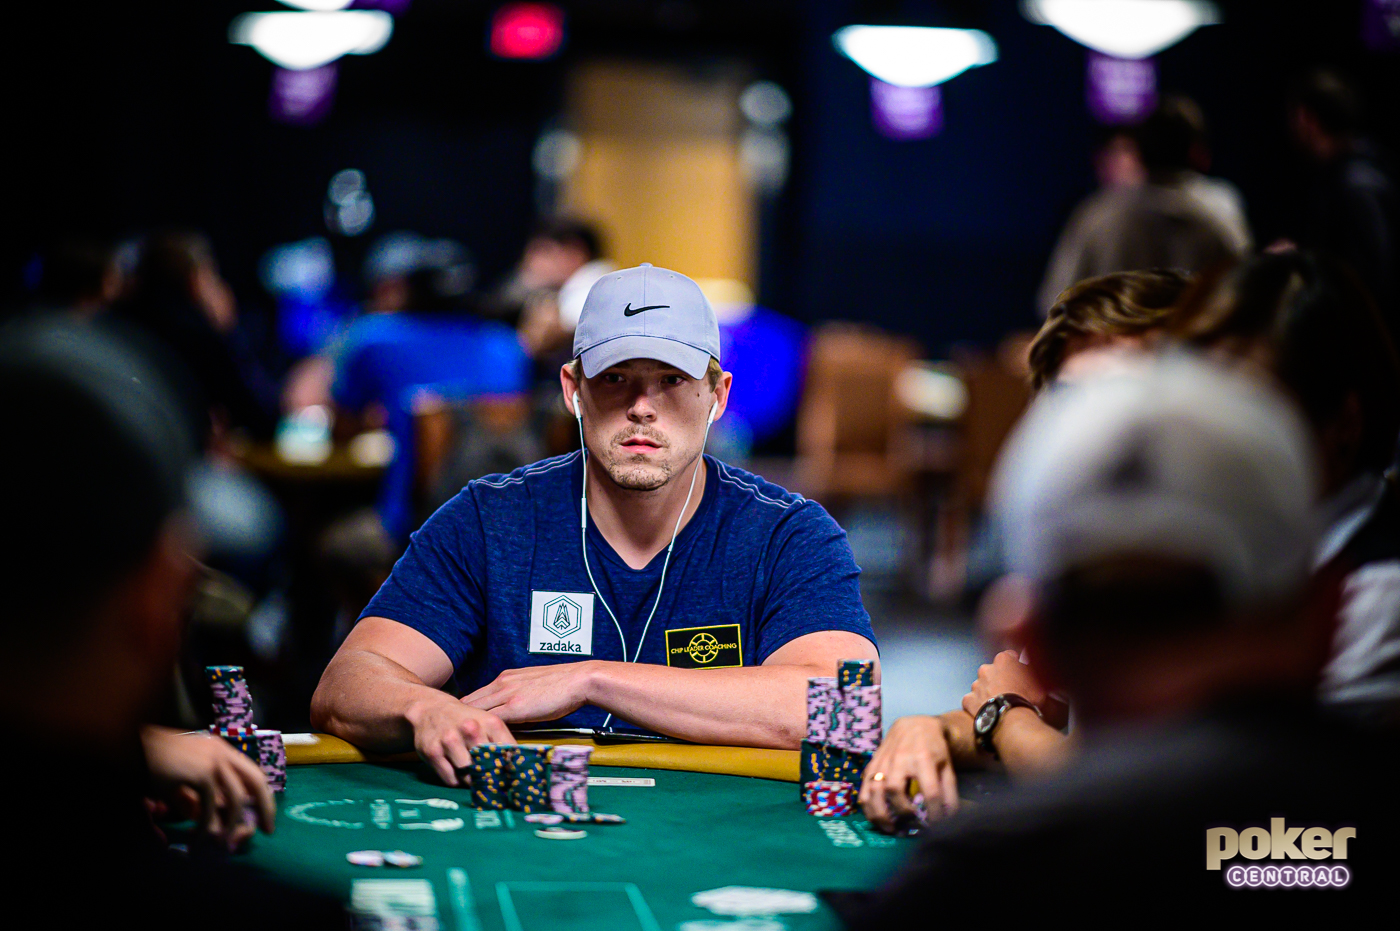 Alex Foxen just prior to getting eliminated late on Day 6 of the 2019 WSOP Main Event.